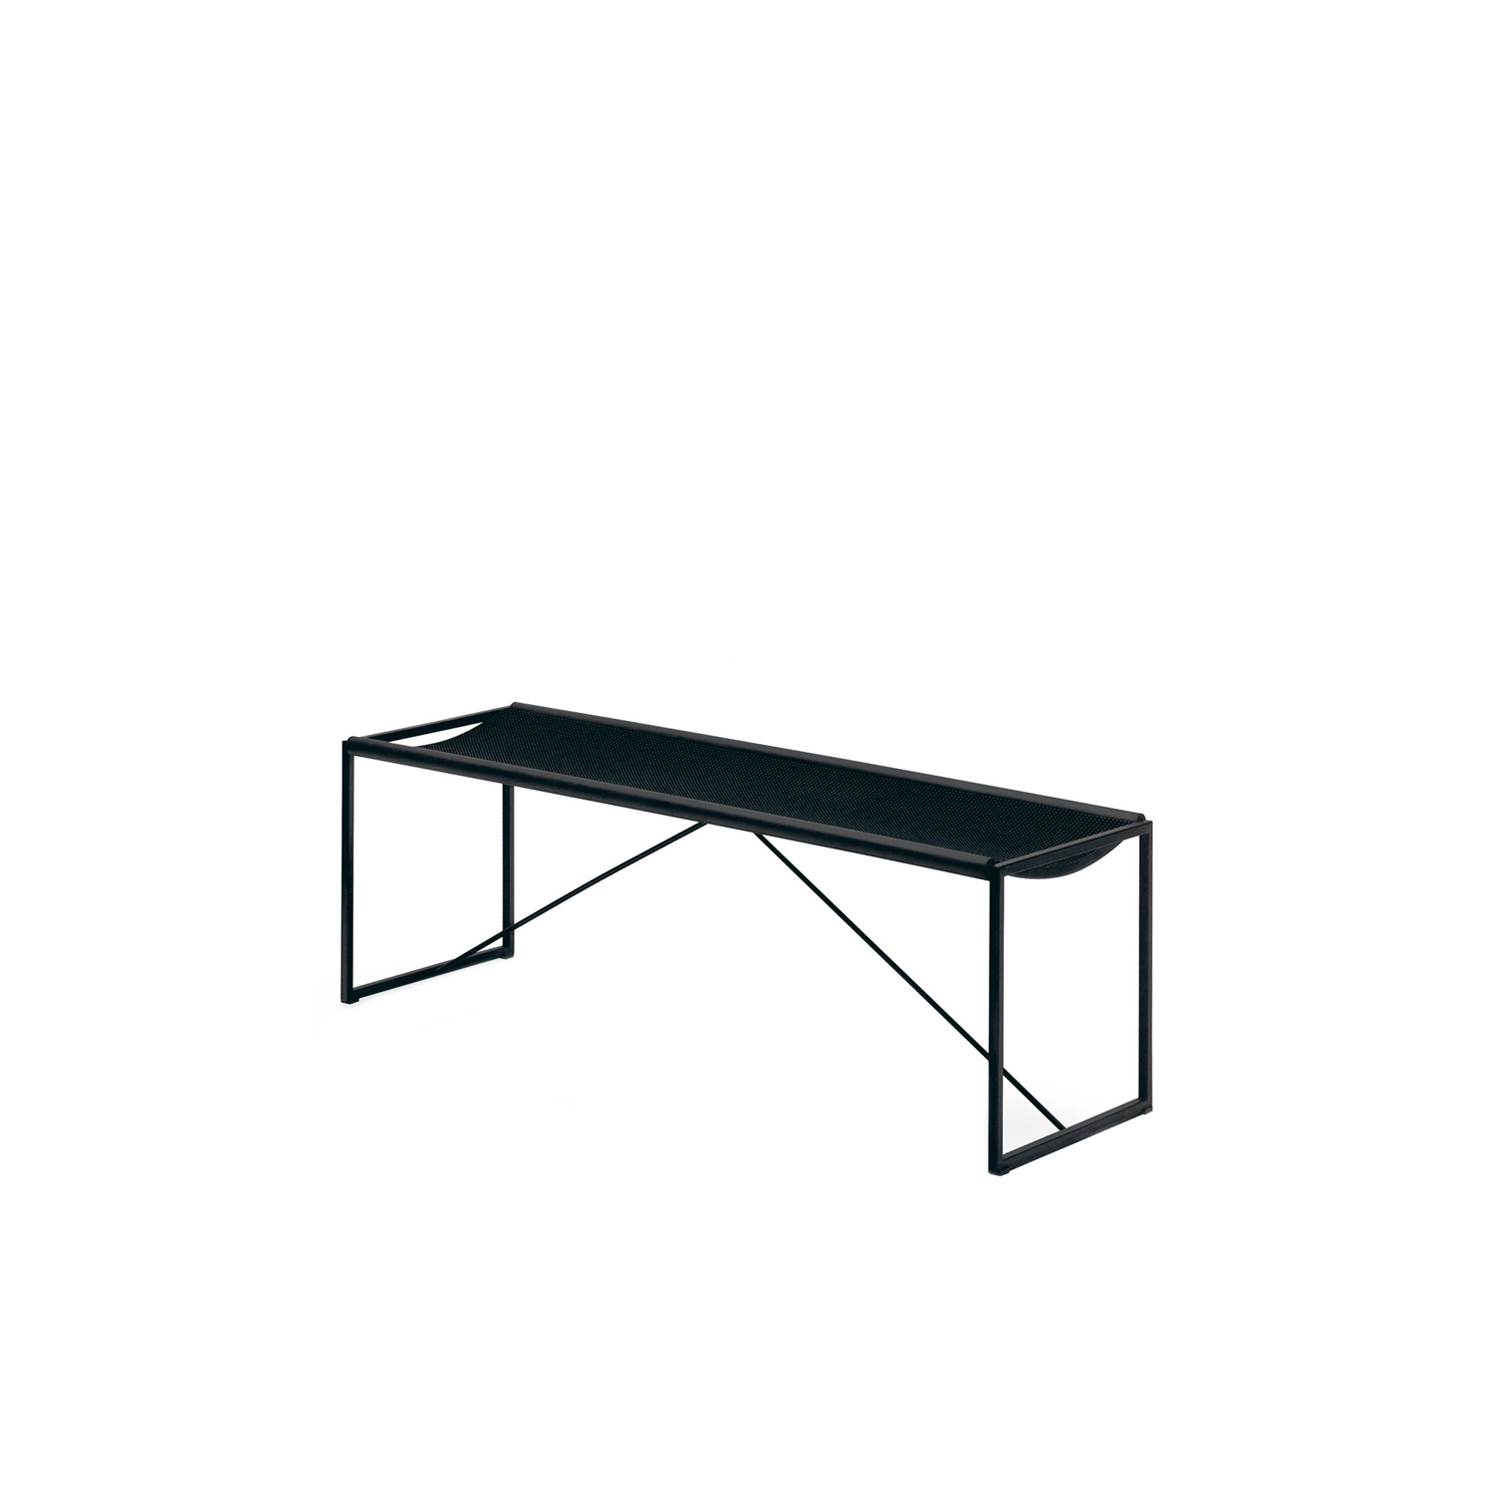 Panca Bench - Designed in 1984 by Maurizio Peregalli the Panca bench is elegant and modern while still having a subtle and sophisticated design. The frame is in all-black tubular-steel which is embossed black. The seat is made with  thousand points rubber with black extruded rubber. It's timeless design means that it can be featured almost anywhere from corridors and entryways to living rooms and dining rooms.     | Matter of Stuff